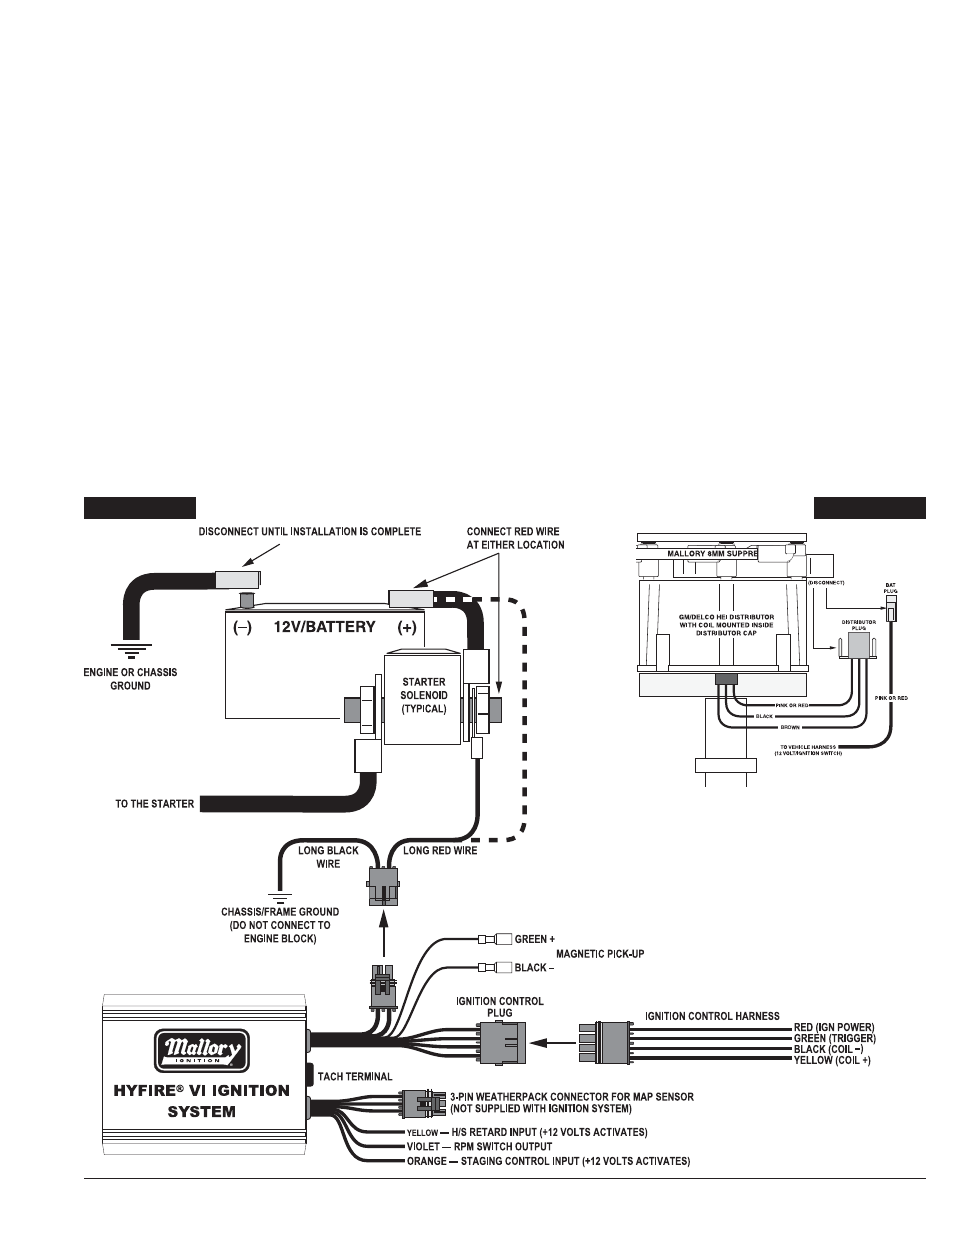 Basic Wiring Procedure